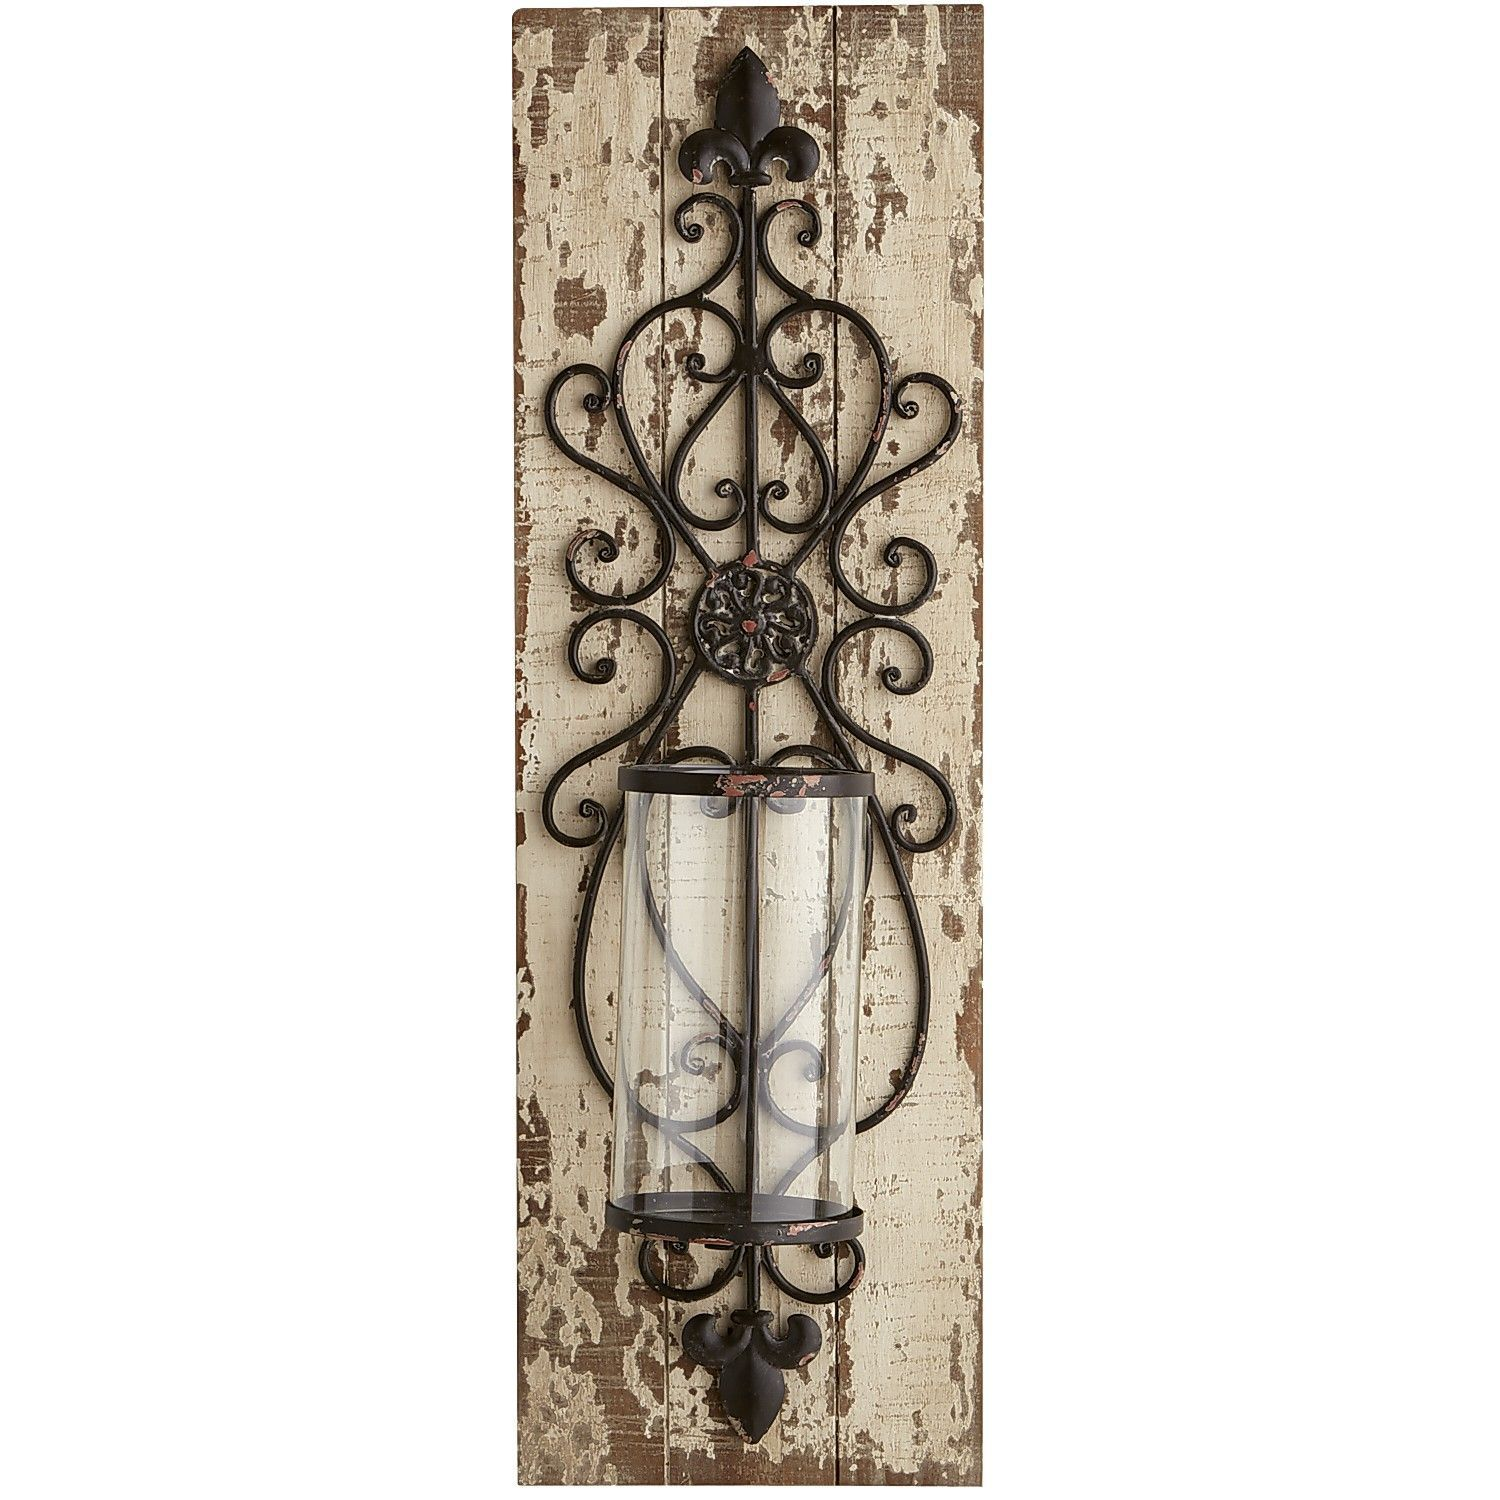 Lydia Wall Sconce Candle Wall Sconces Wall Candles Wall Candle Holders